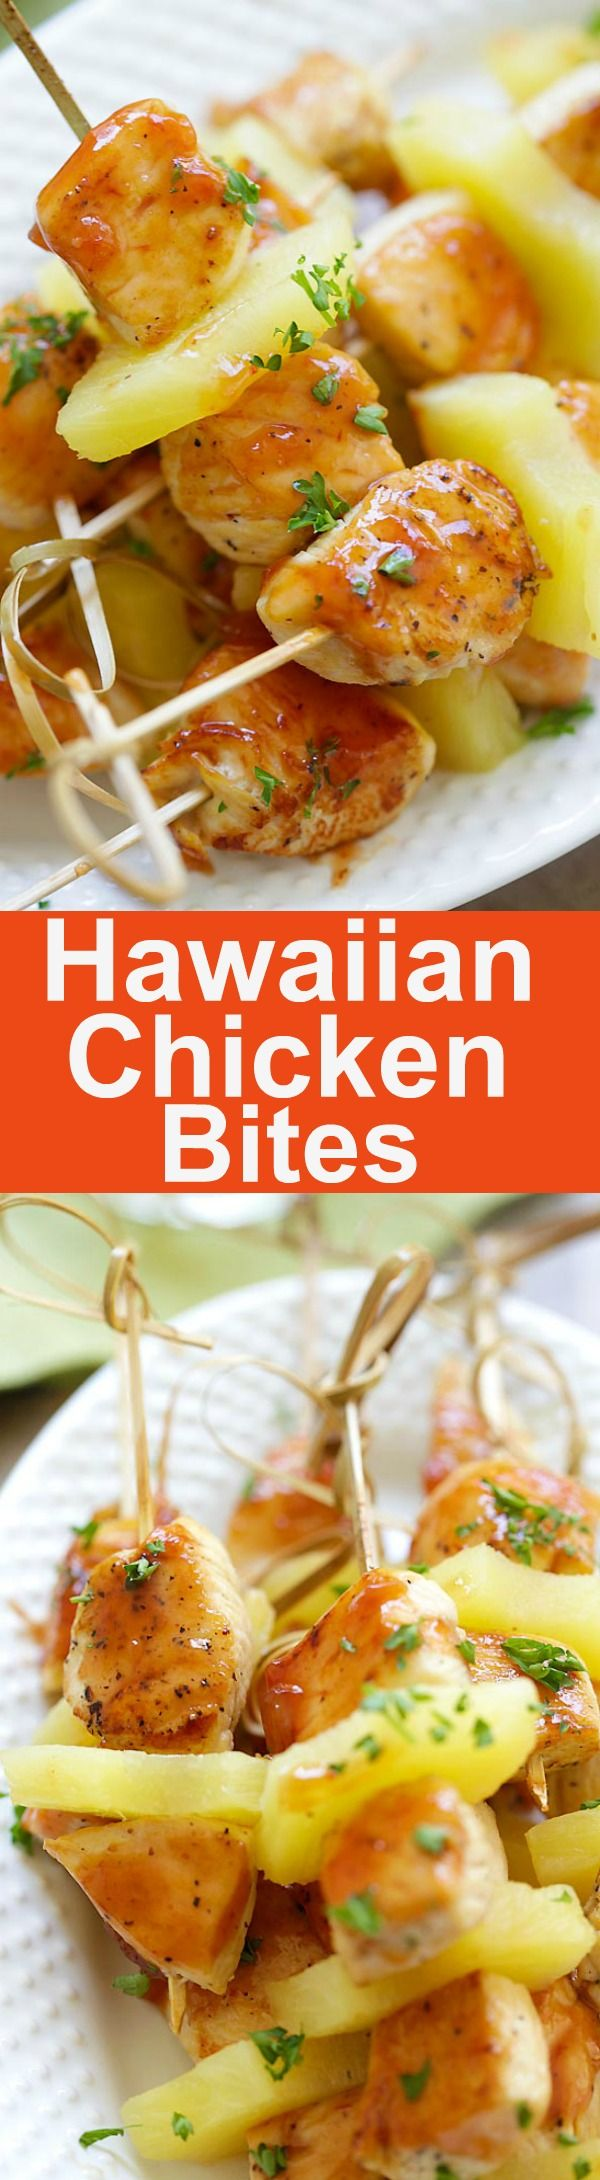 30 healthy dinner recipes ready in 30 minutes hawaiian bbq finger foods hawaiian chicken bites amazing chicken skewers with pineapple with hawaiian bbq sauce this recipe forumfinder Gallery